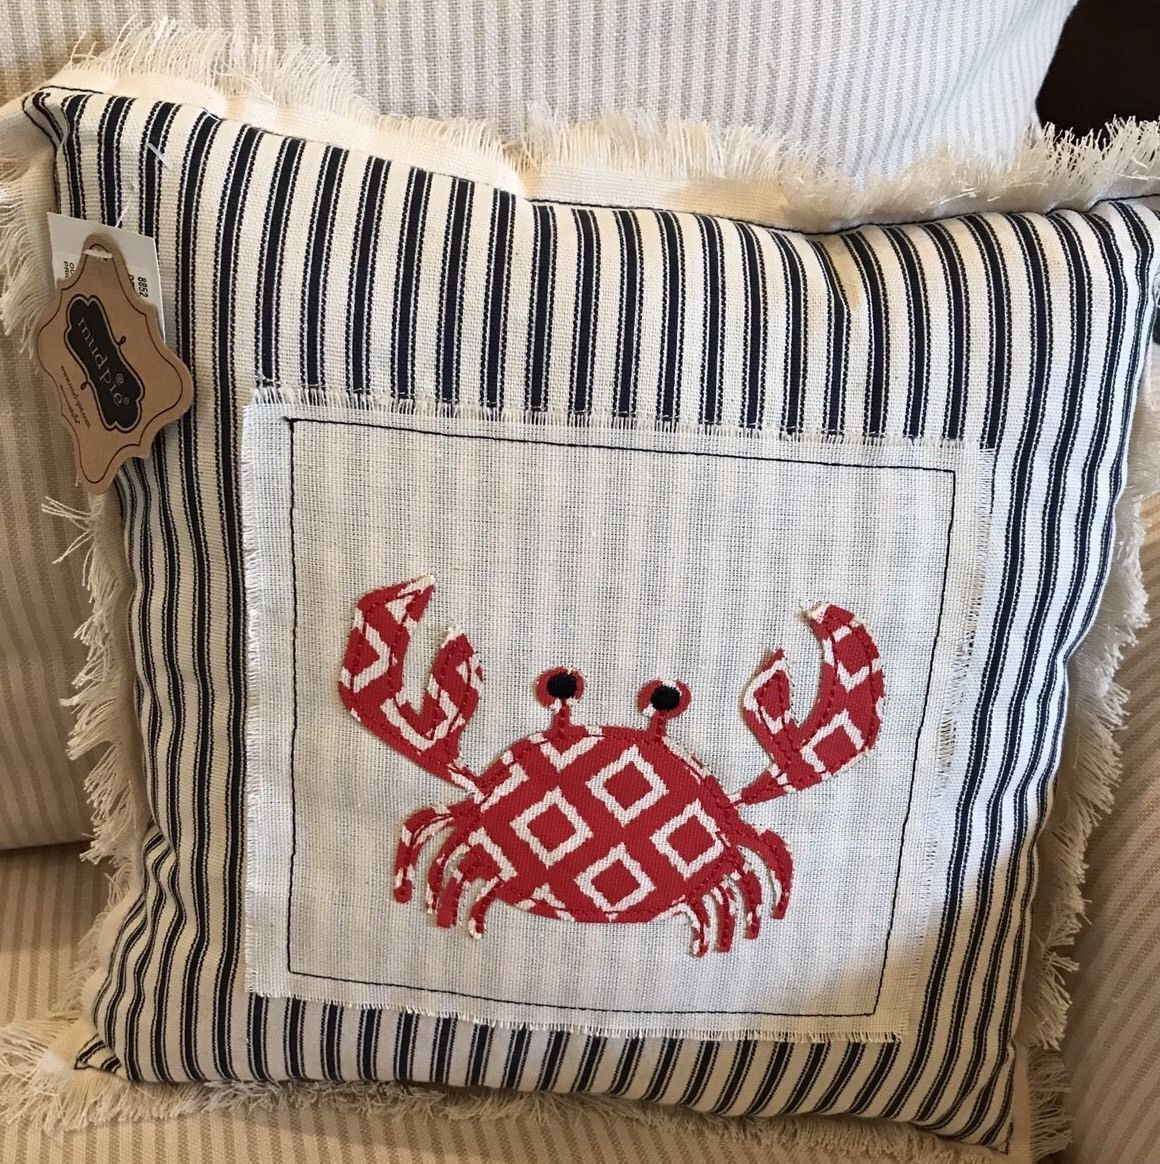 """Made of natural linen with embroidered appliqued designs and frayed edges, spot clean with damp cloth. CoastalCrab 12"""" Cotton Pillow (1) Mud Pie Measures 12"""" square. CottonCrab Pillow features top-stitched canvas layer with Navy French ticking and red crab applique.Fringe around sides. 